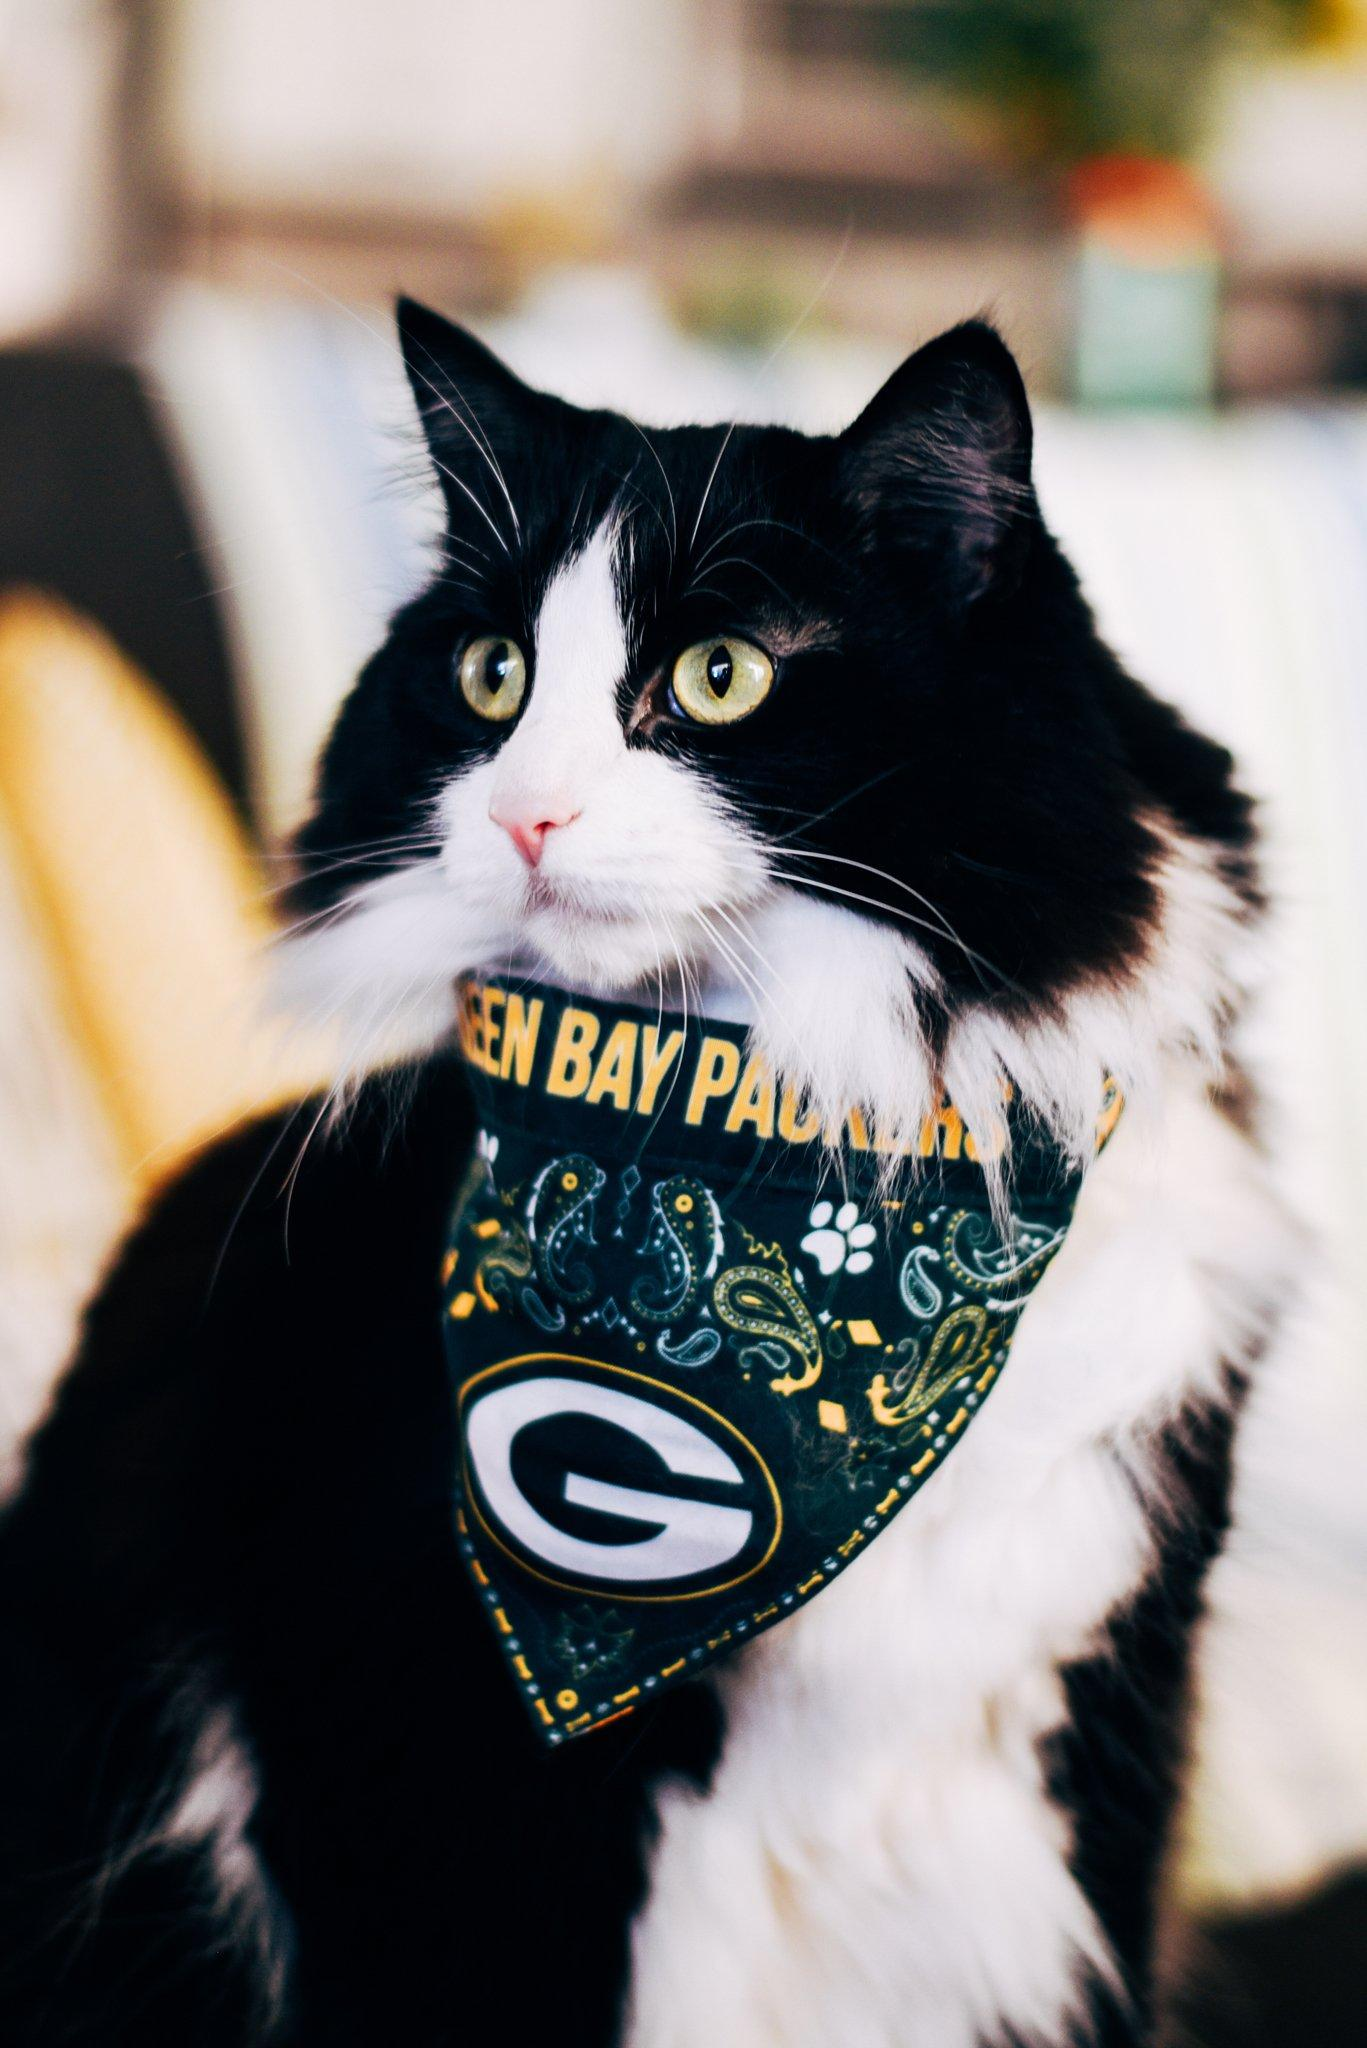 We love our #PackersPets! Thanks for sharing your photos, fans.   #LoveYourPetDay ��: https://t.co/tuHDY08mDA https://t.co/Zyzq1vzYyf